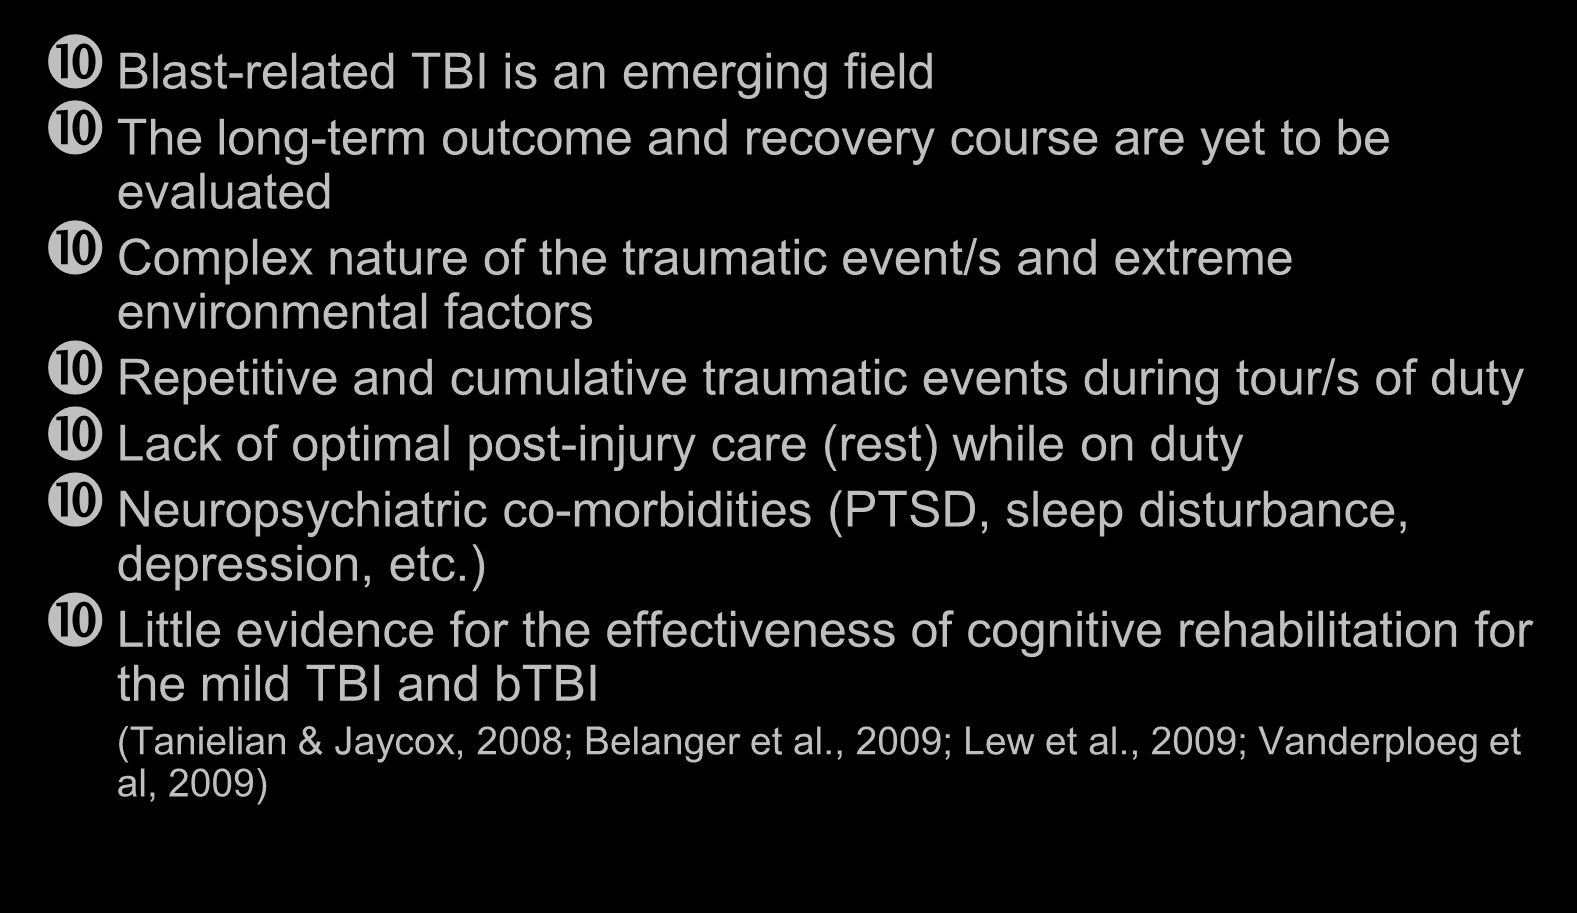 Challenges Blast-related TBI is an emerging field The long-term outcome and recovery course are yet to be evaluated Complex nature of the traumatic event/s and extreme environmental factors